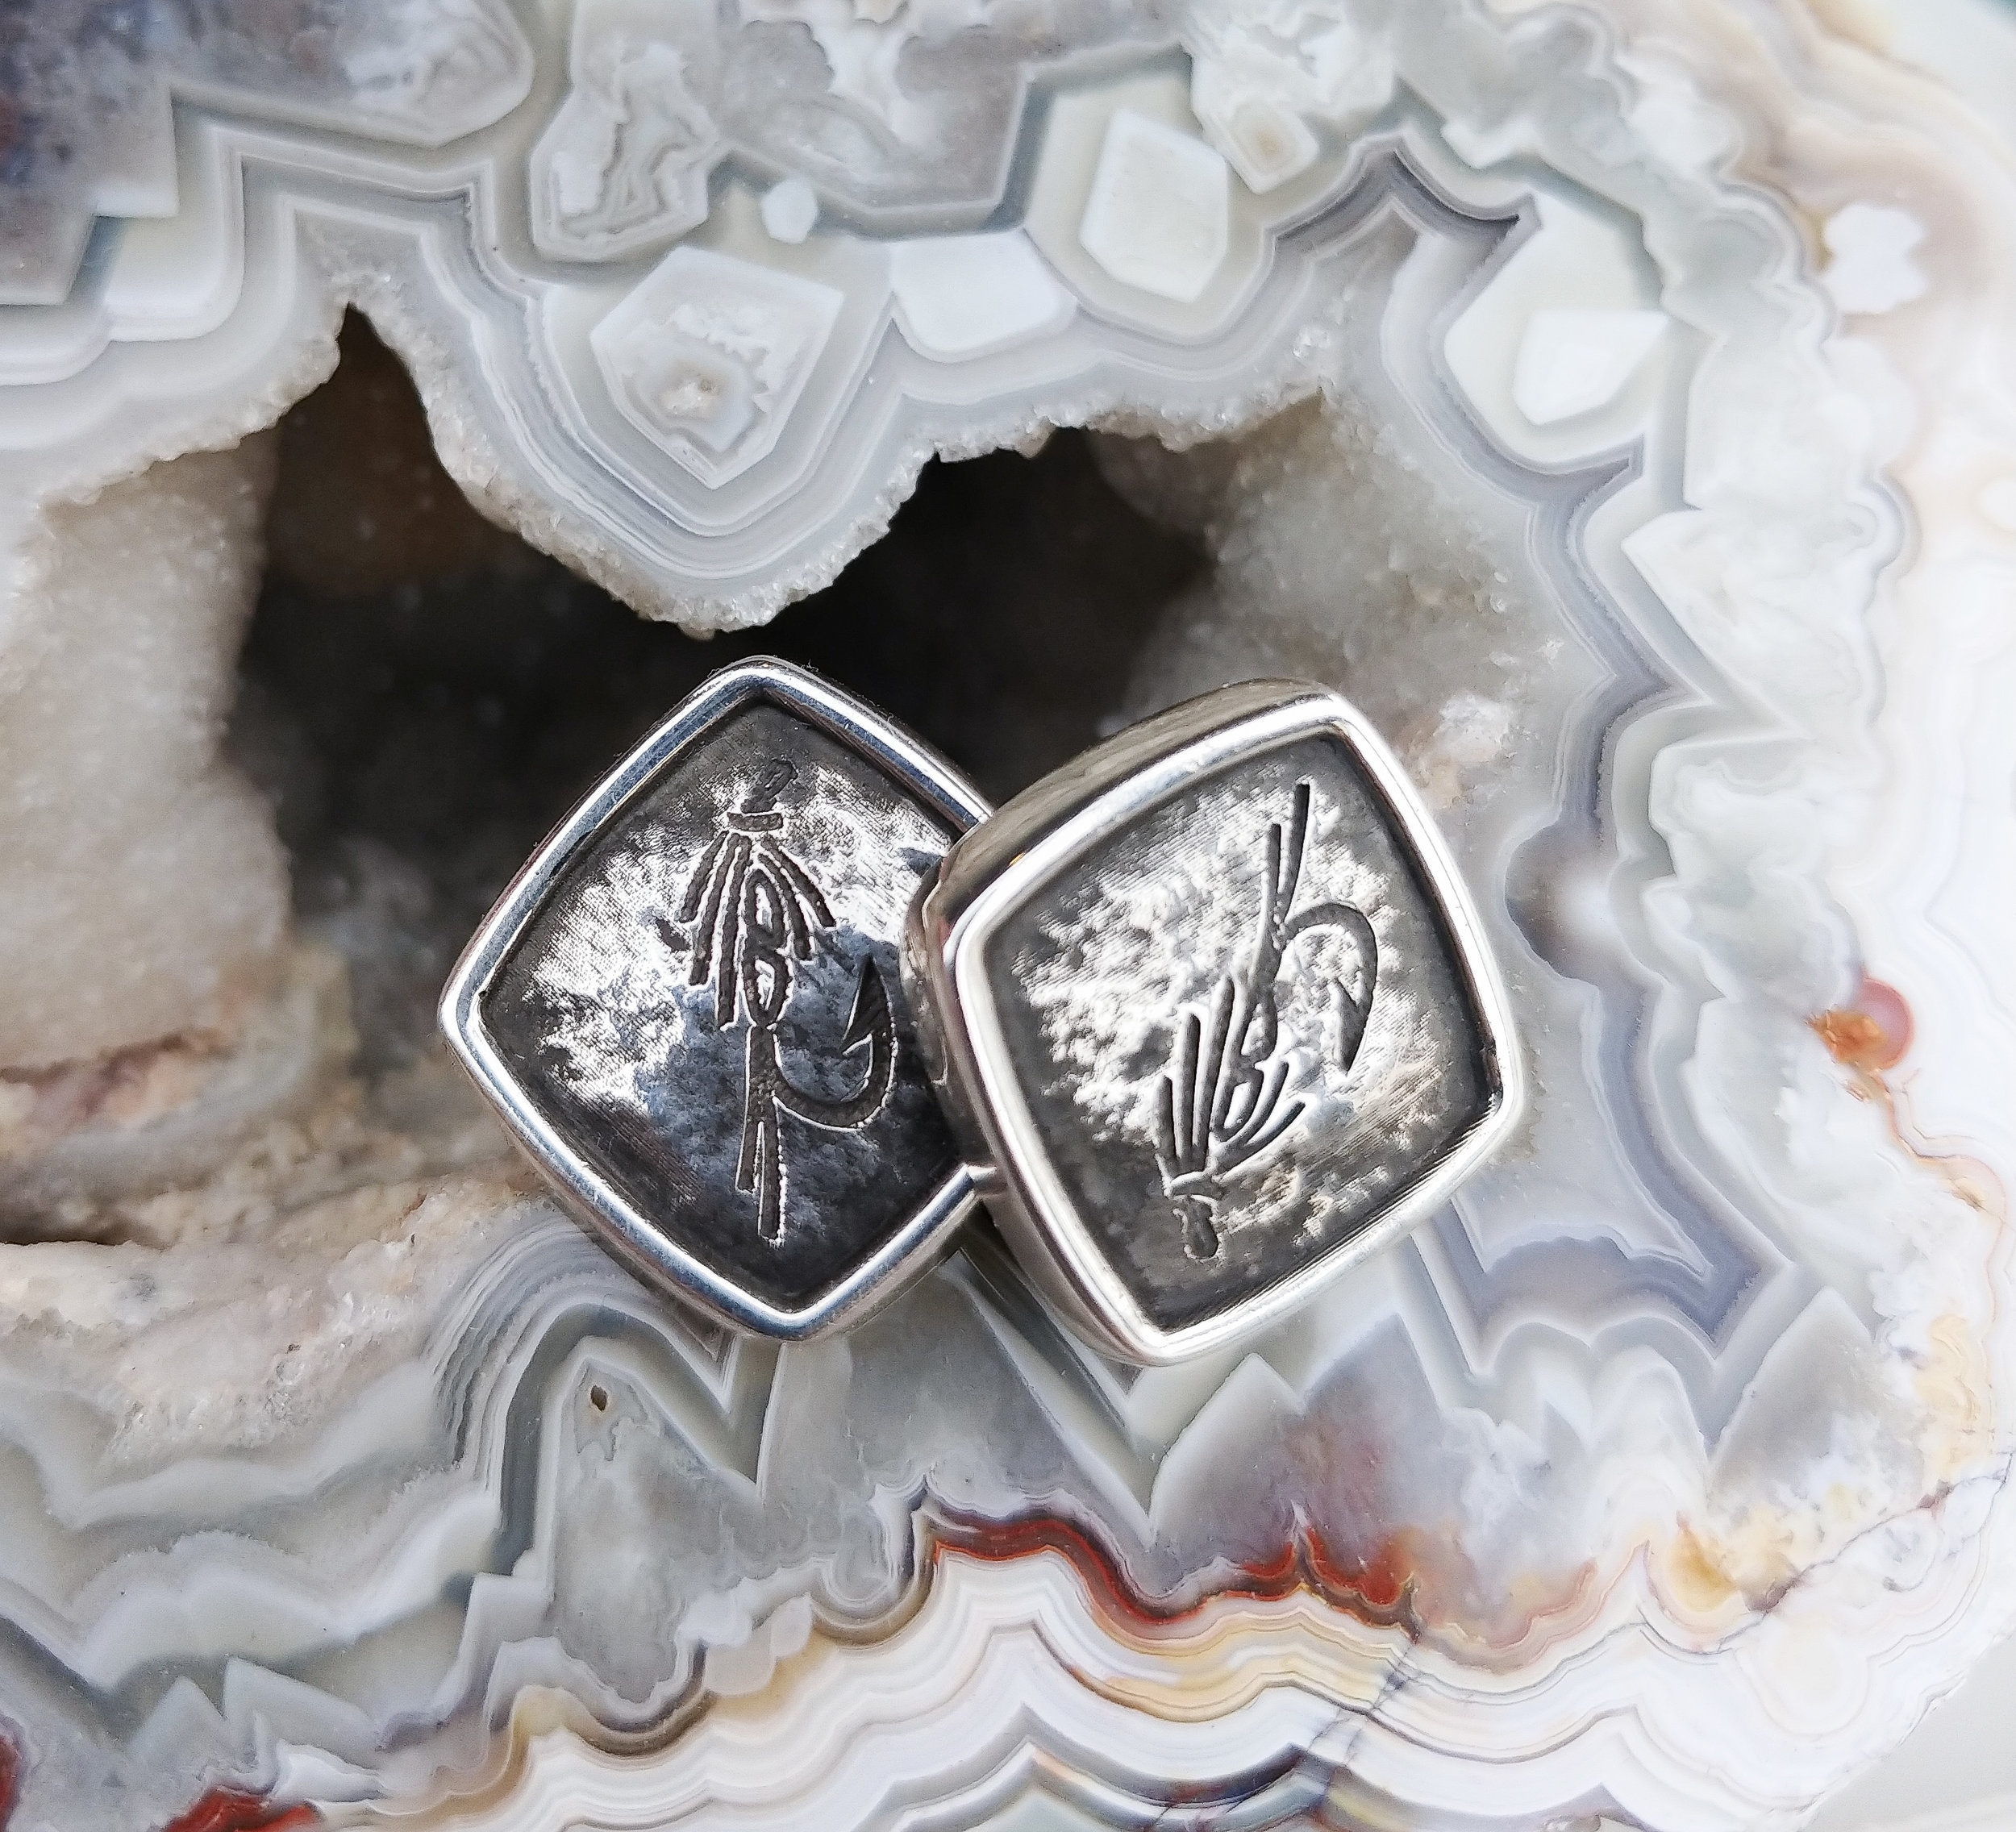 #13478 Sterling Silver Cuff-Links Stephen Isley Custom Design Featuring Fly-Fishing Hooks  Contact Us For Pricing